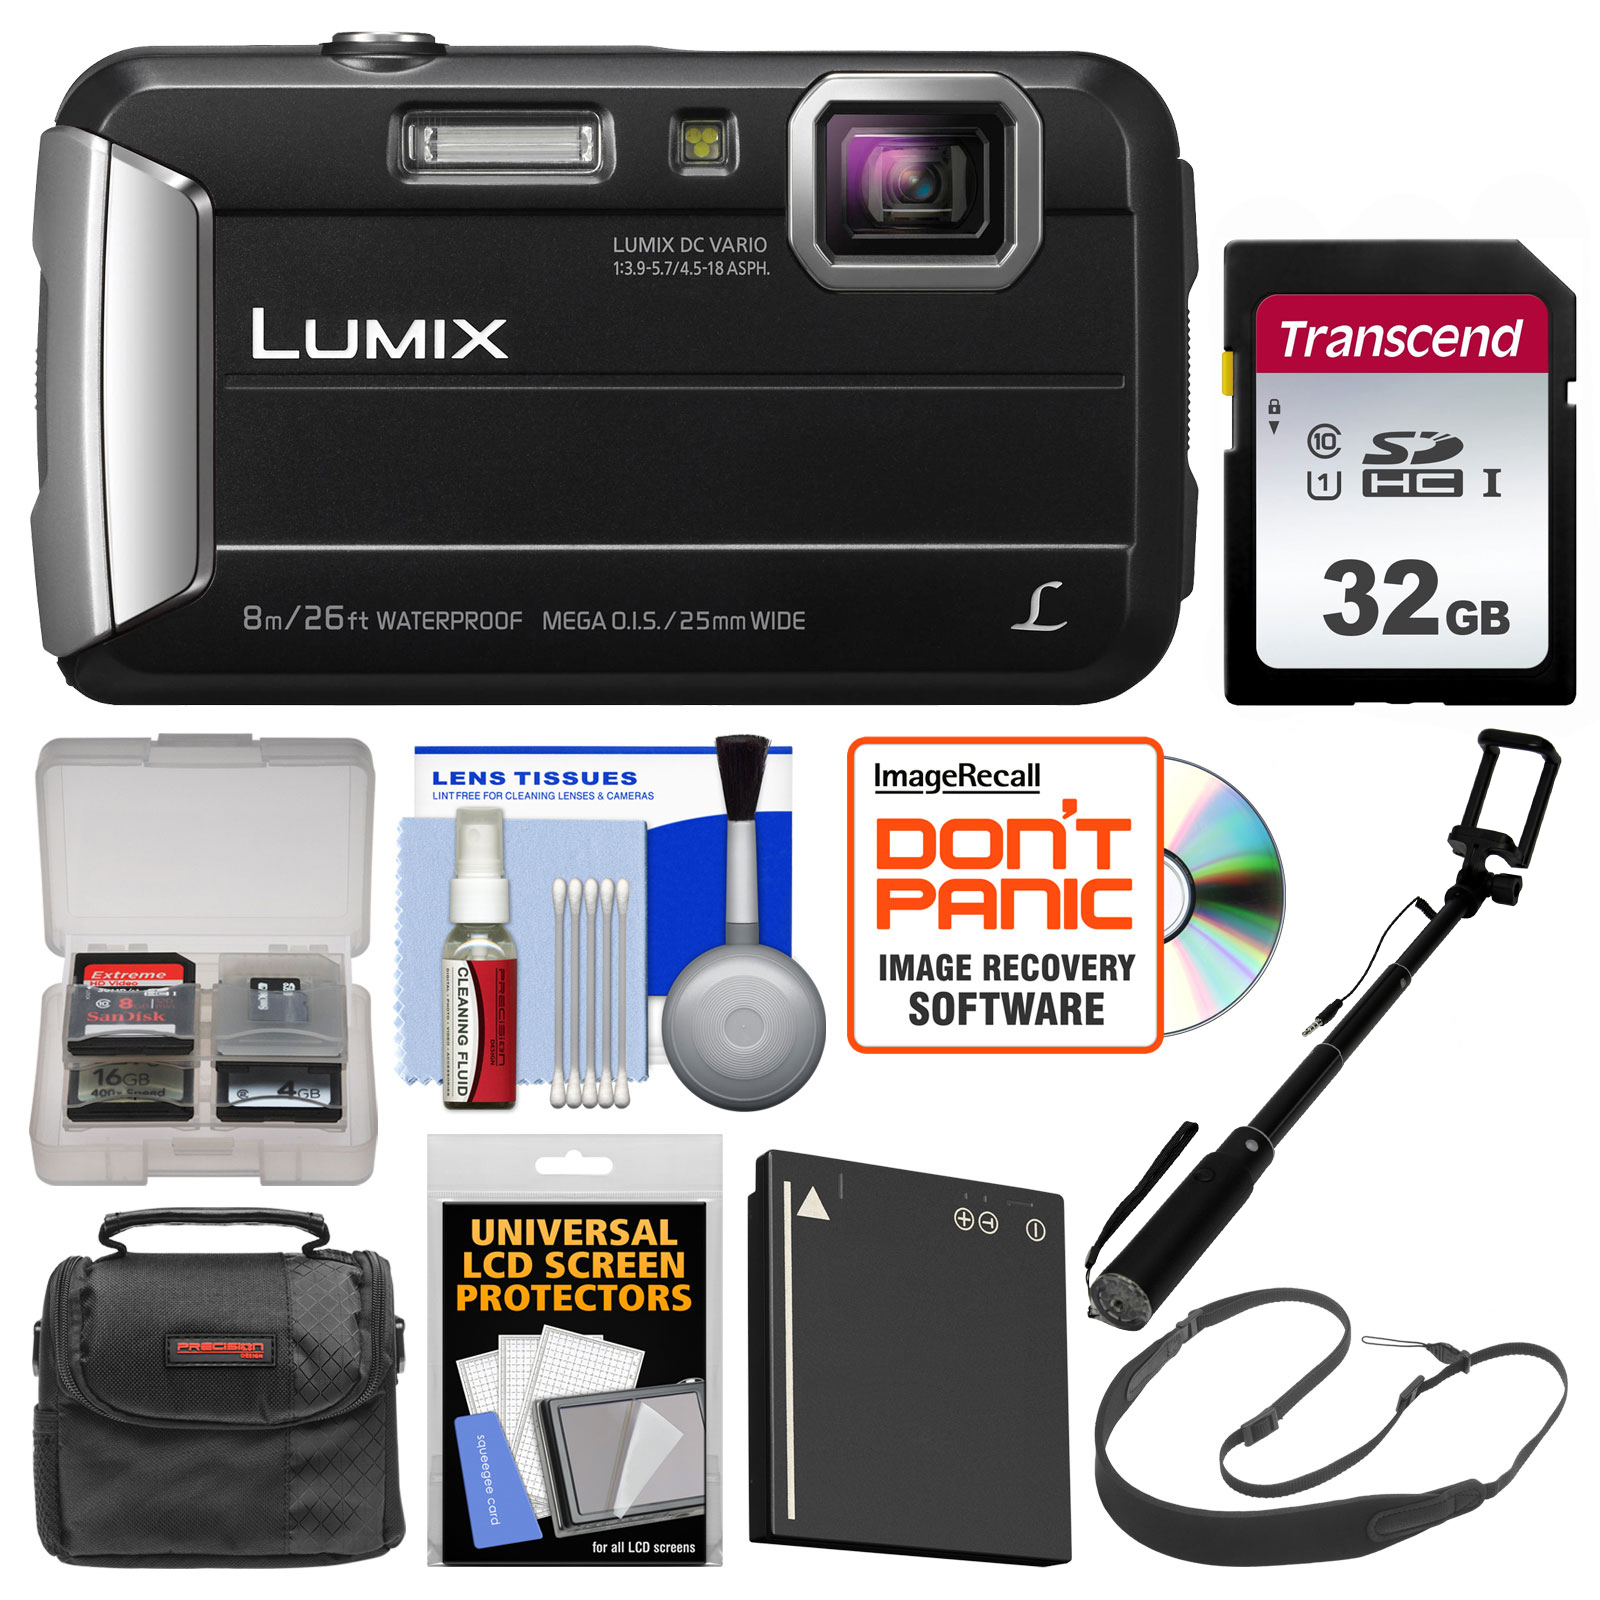 Panasonic Lumix DMC-TS30 Tough Shock + Waterproof Digital Camera (Red) with 32GB Card + Case + Battery + Selfie Stick Monopod + Sling Strap Kit